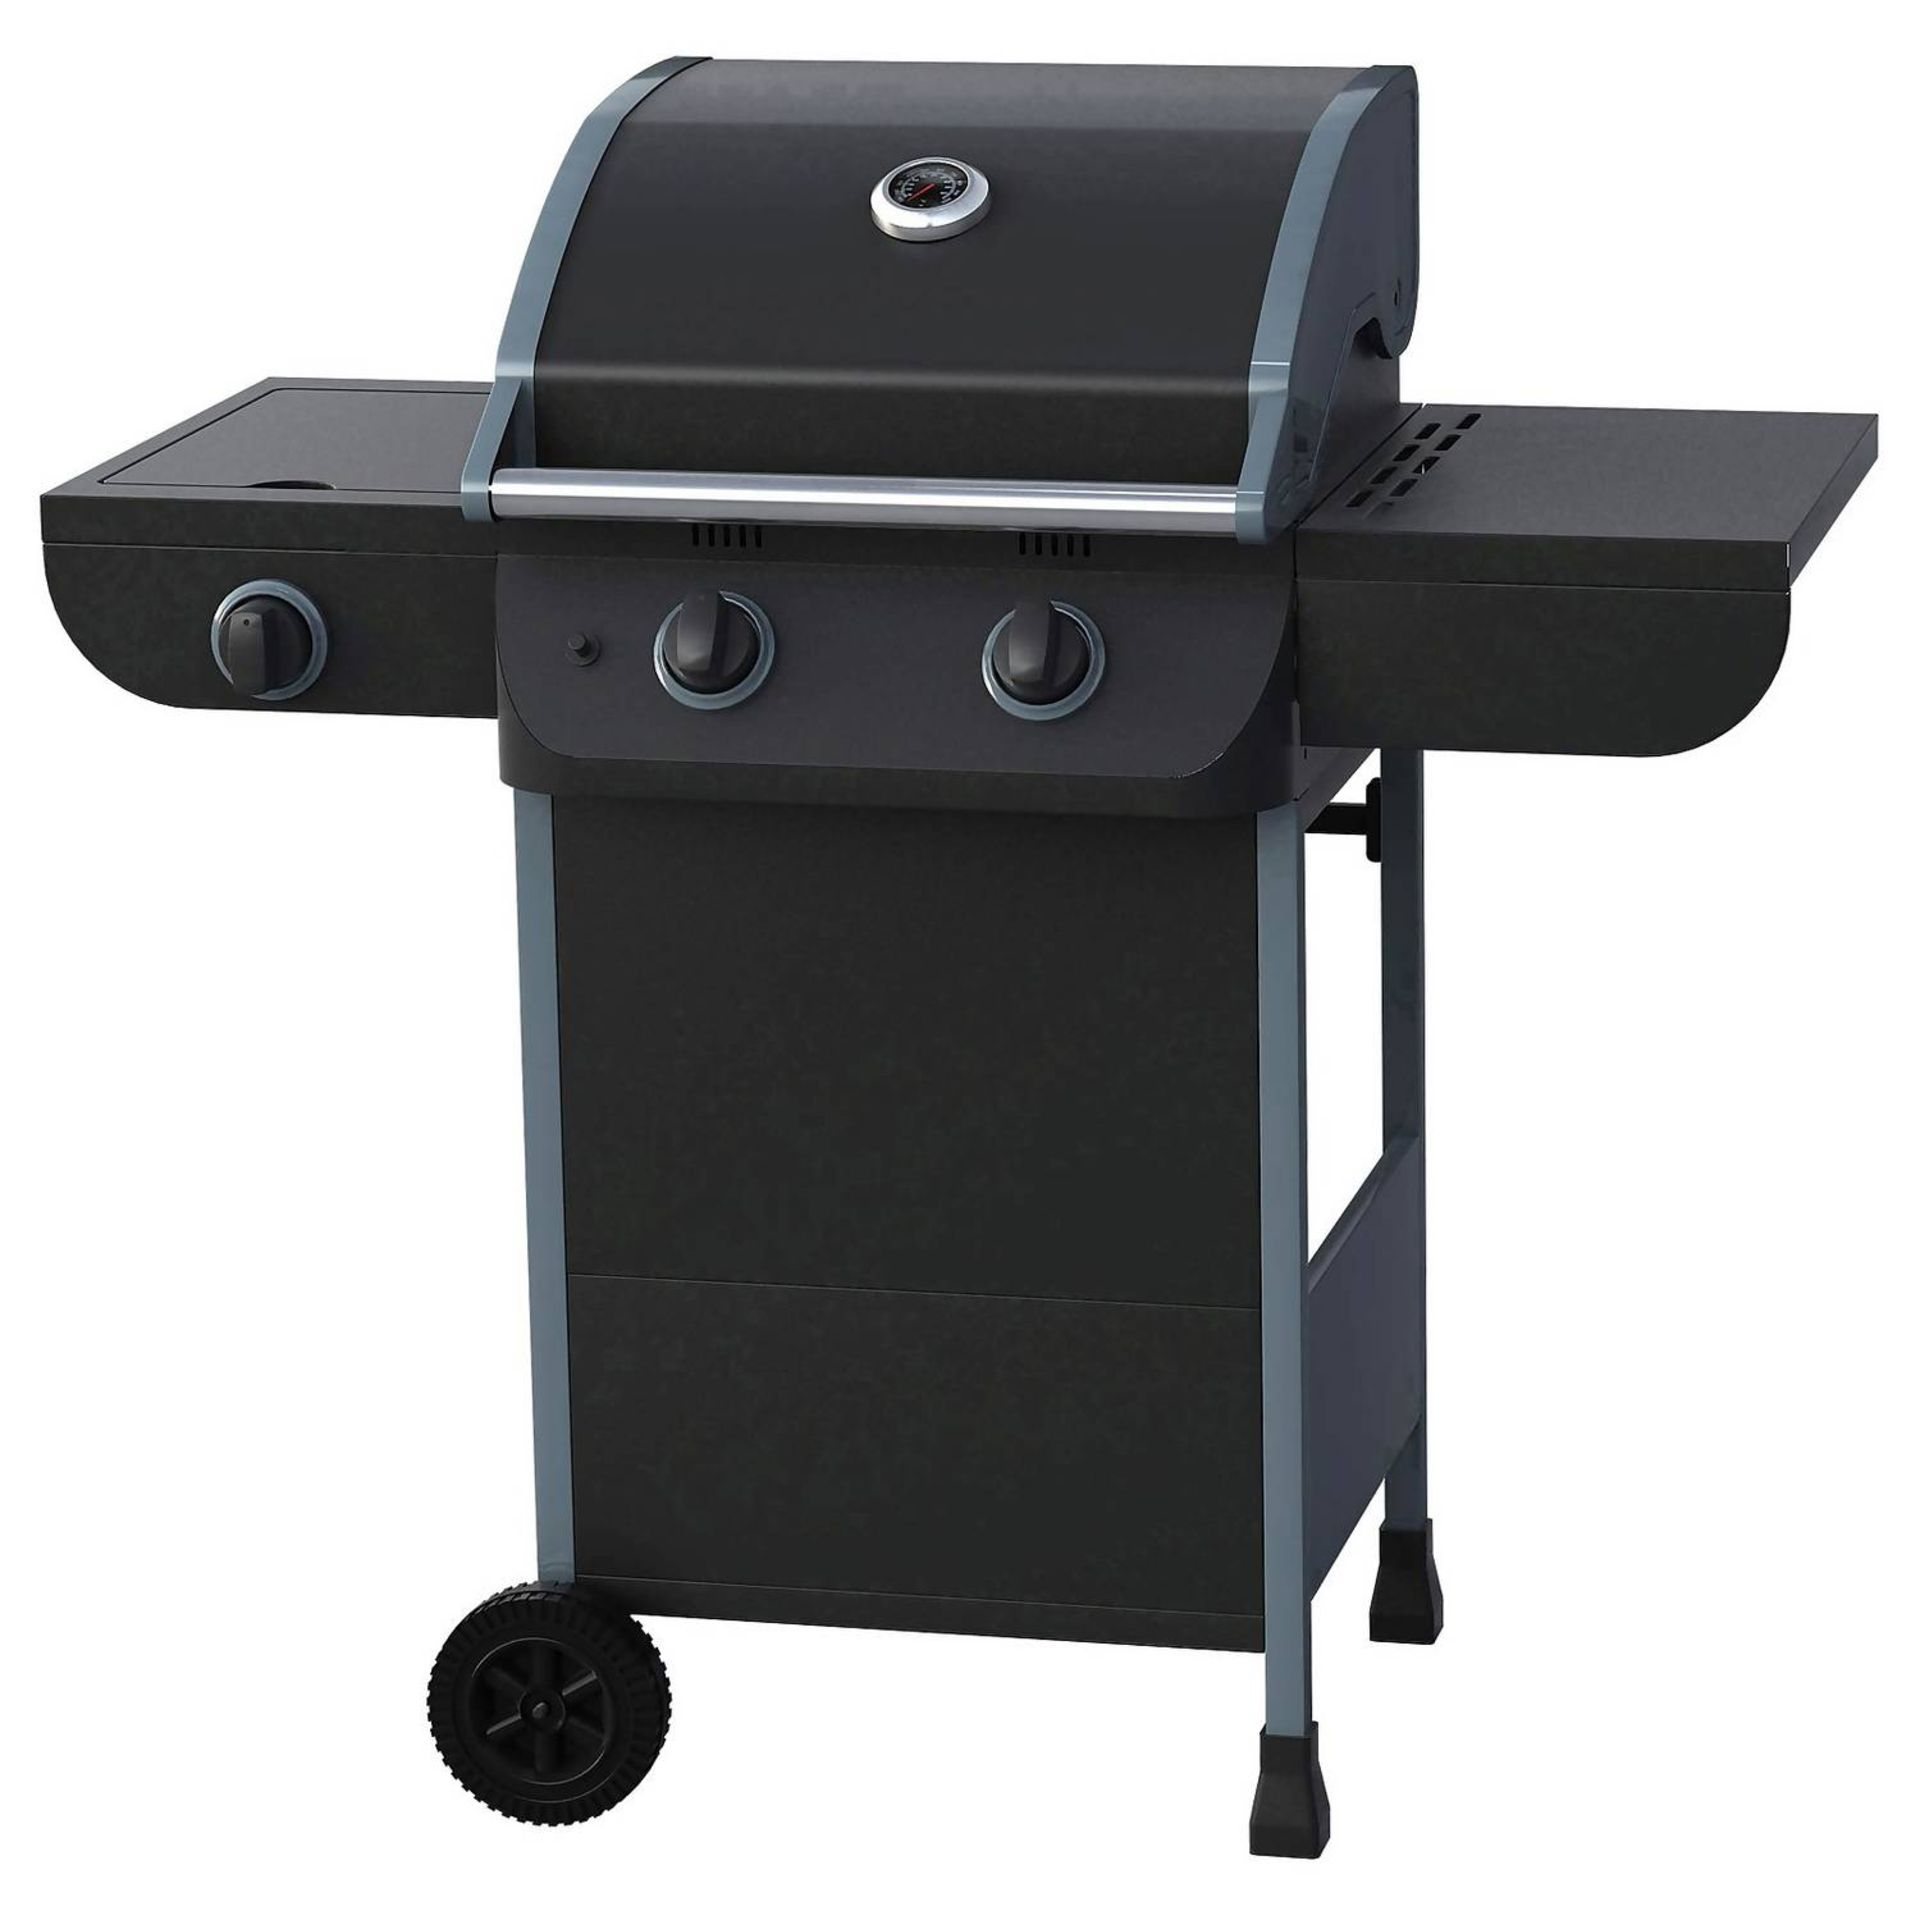 (P8) 1x Texas Nimbus 2 Burner Gas BBQ RRP £80. Contents Appear As New – Unused & Not Previously Re - Image 2 of 6